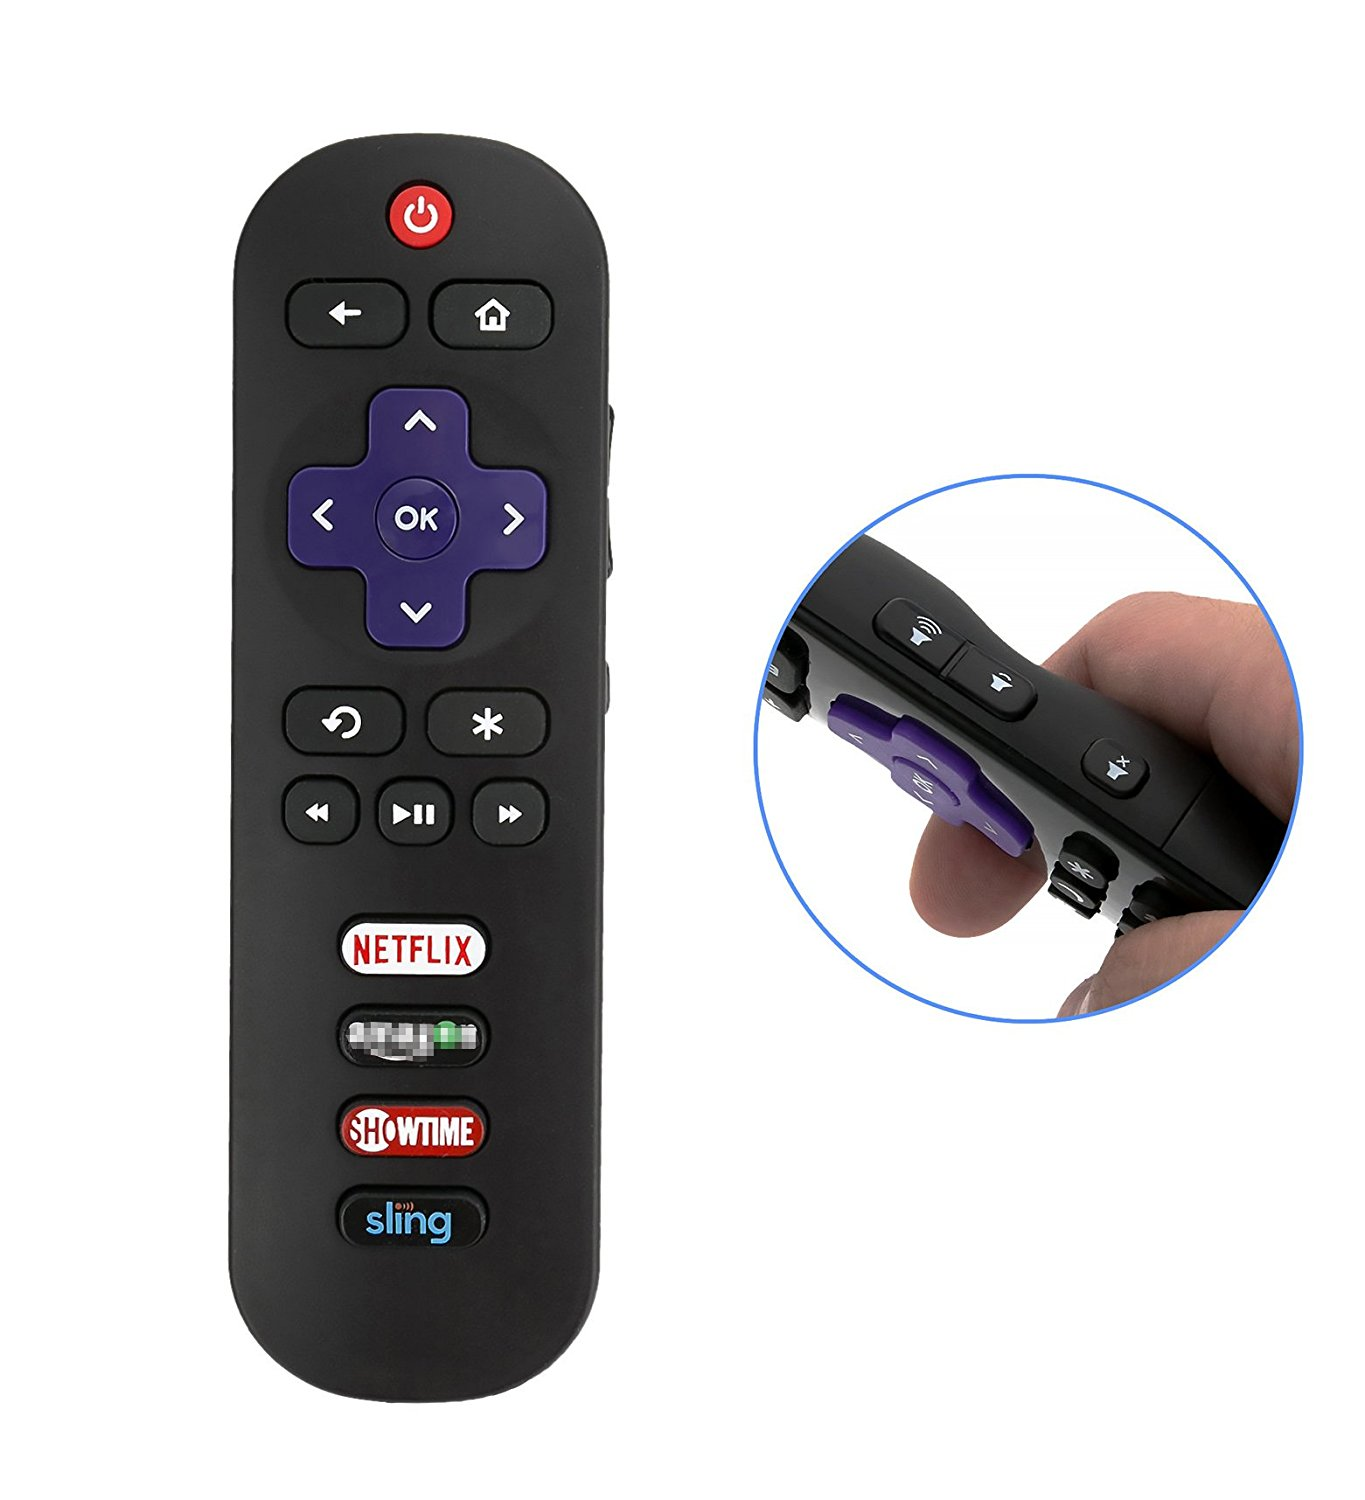 New Original Hisense EN3B32HS Roku TV Remote Control w/ Smart Channel Keys